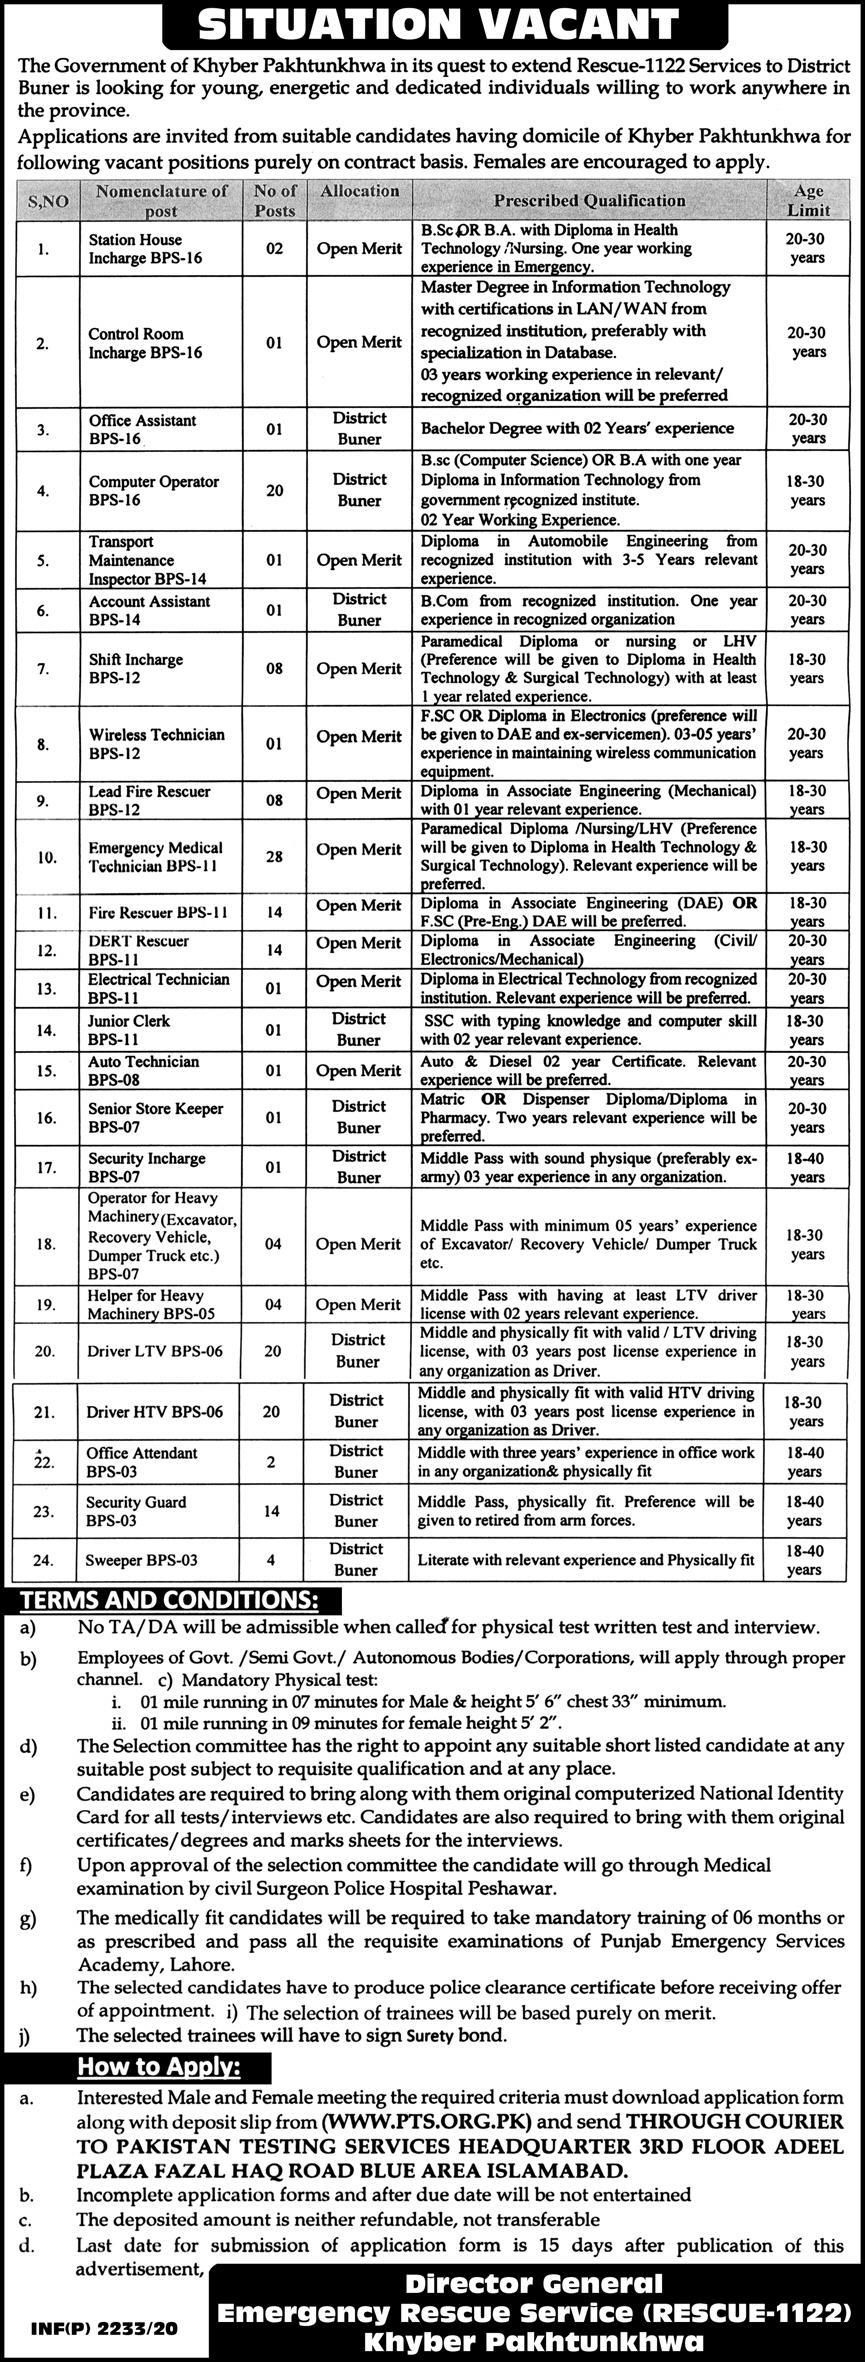 Kpk Emergency Rescue Service 1122 jobs newspaper ad for Security Incharge in Peshawar